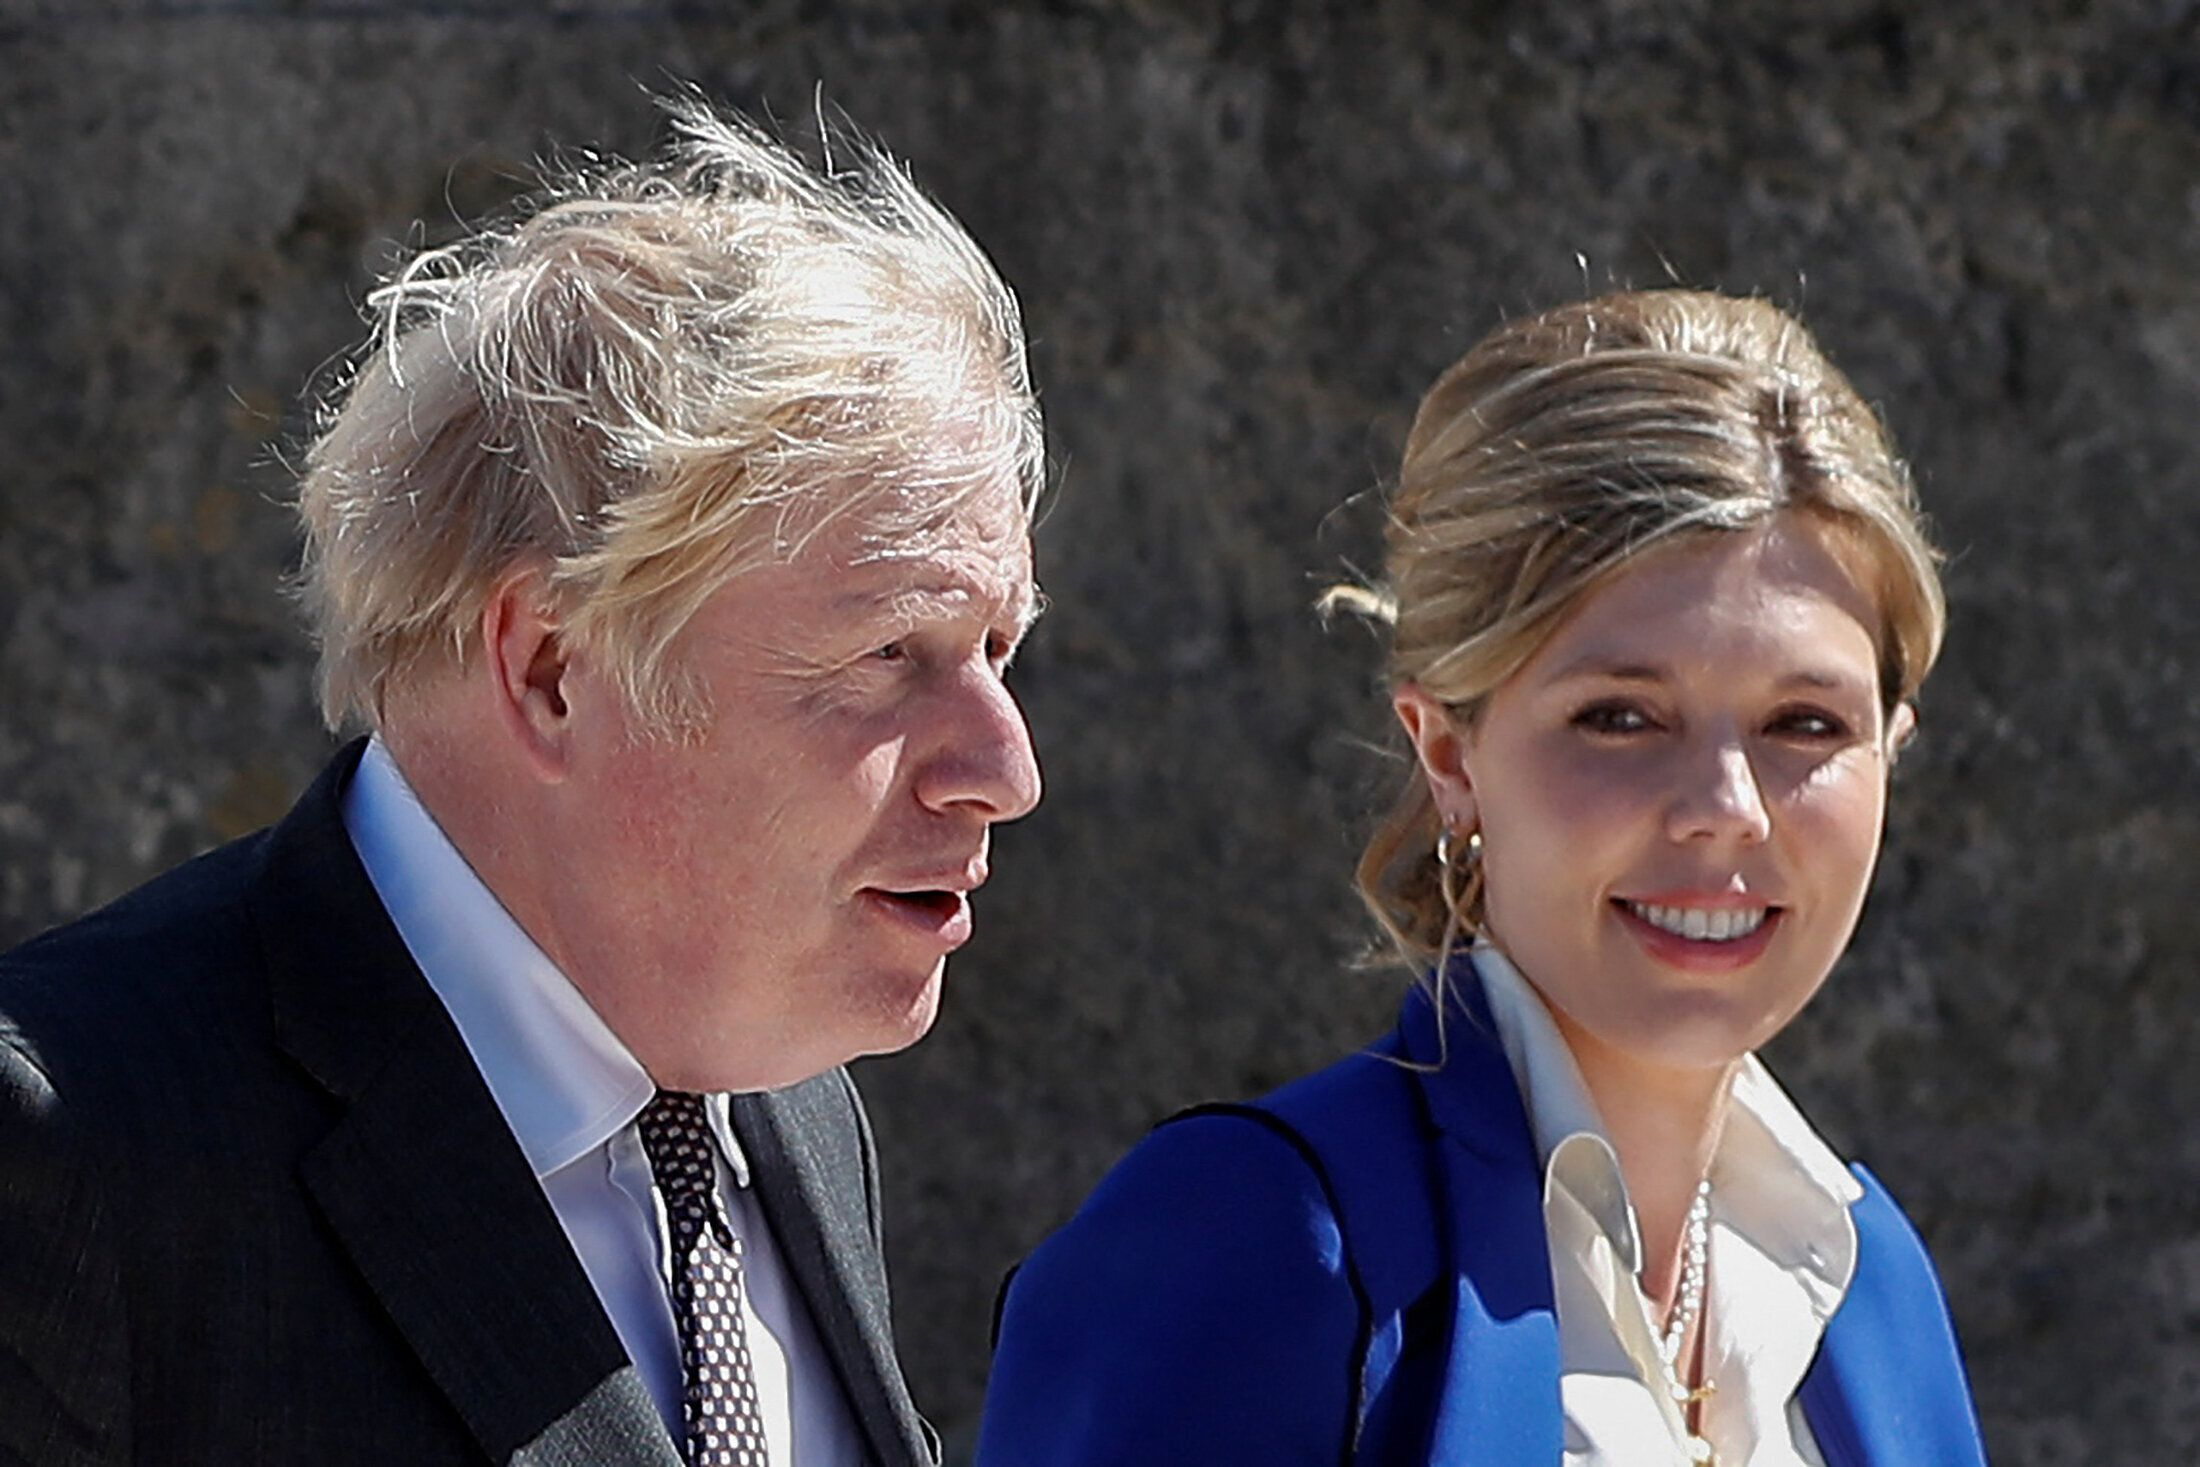 Boris Johnson Has Gone 'Away' With His Family To The West Country, No.10 Reveals